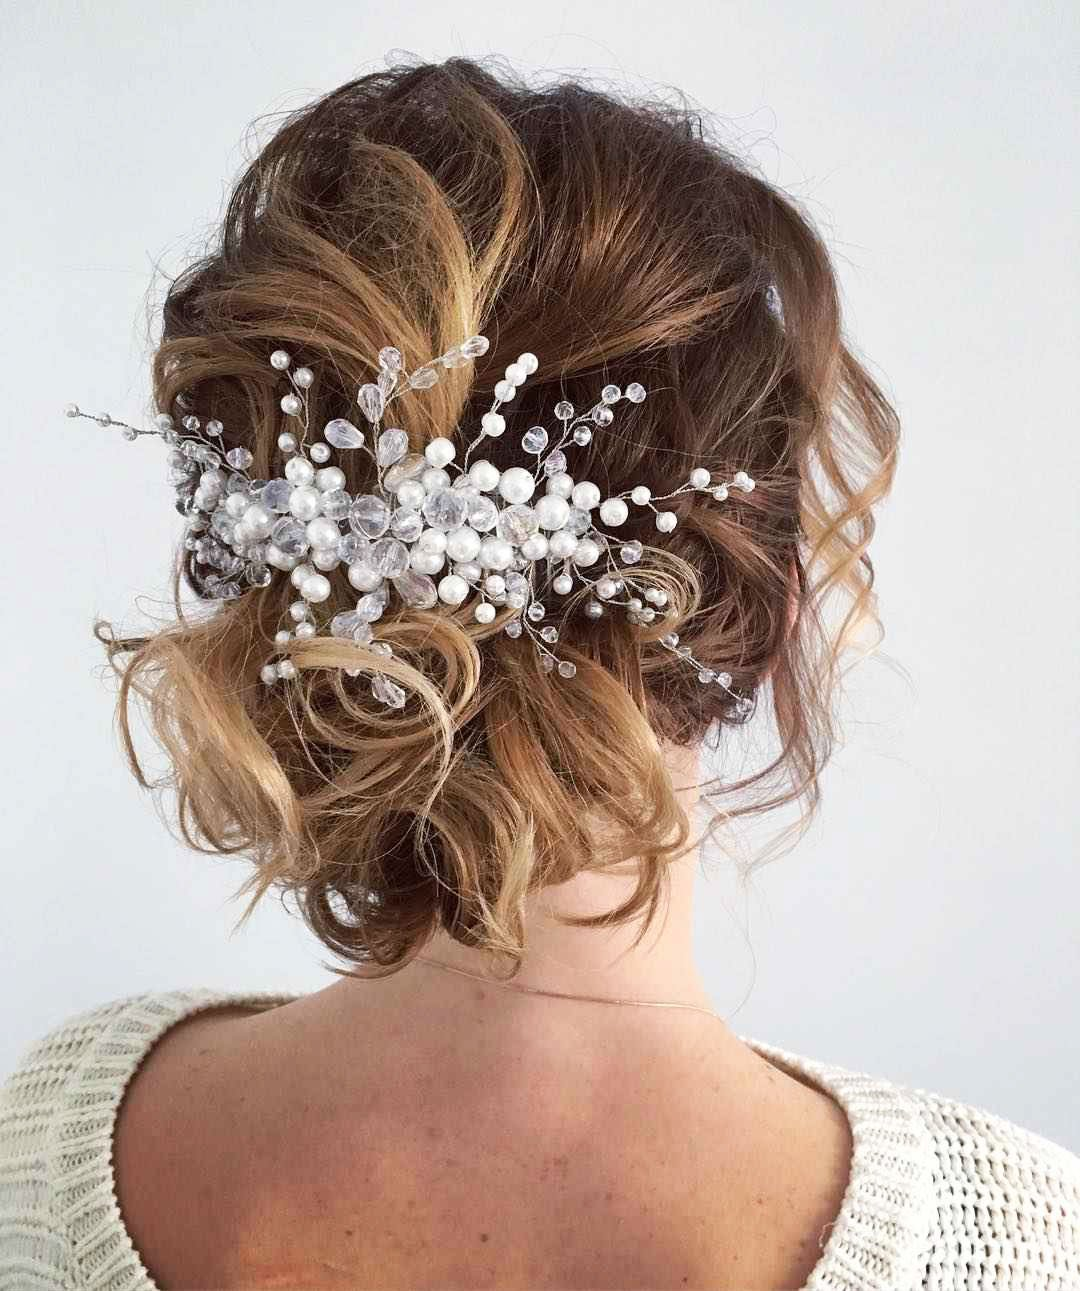 Hairstyles with white pins